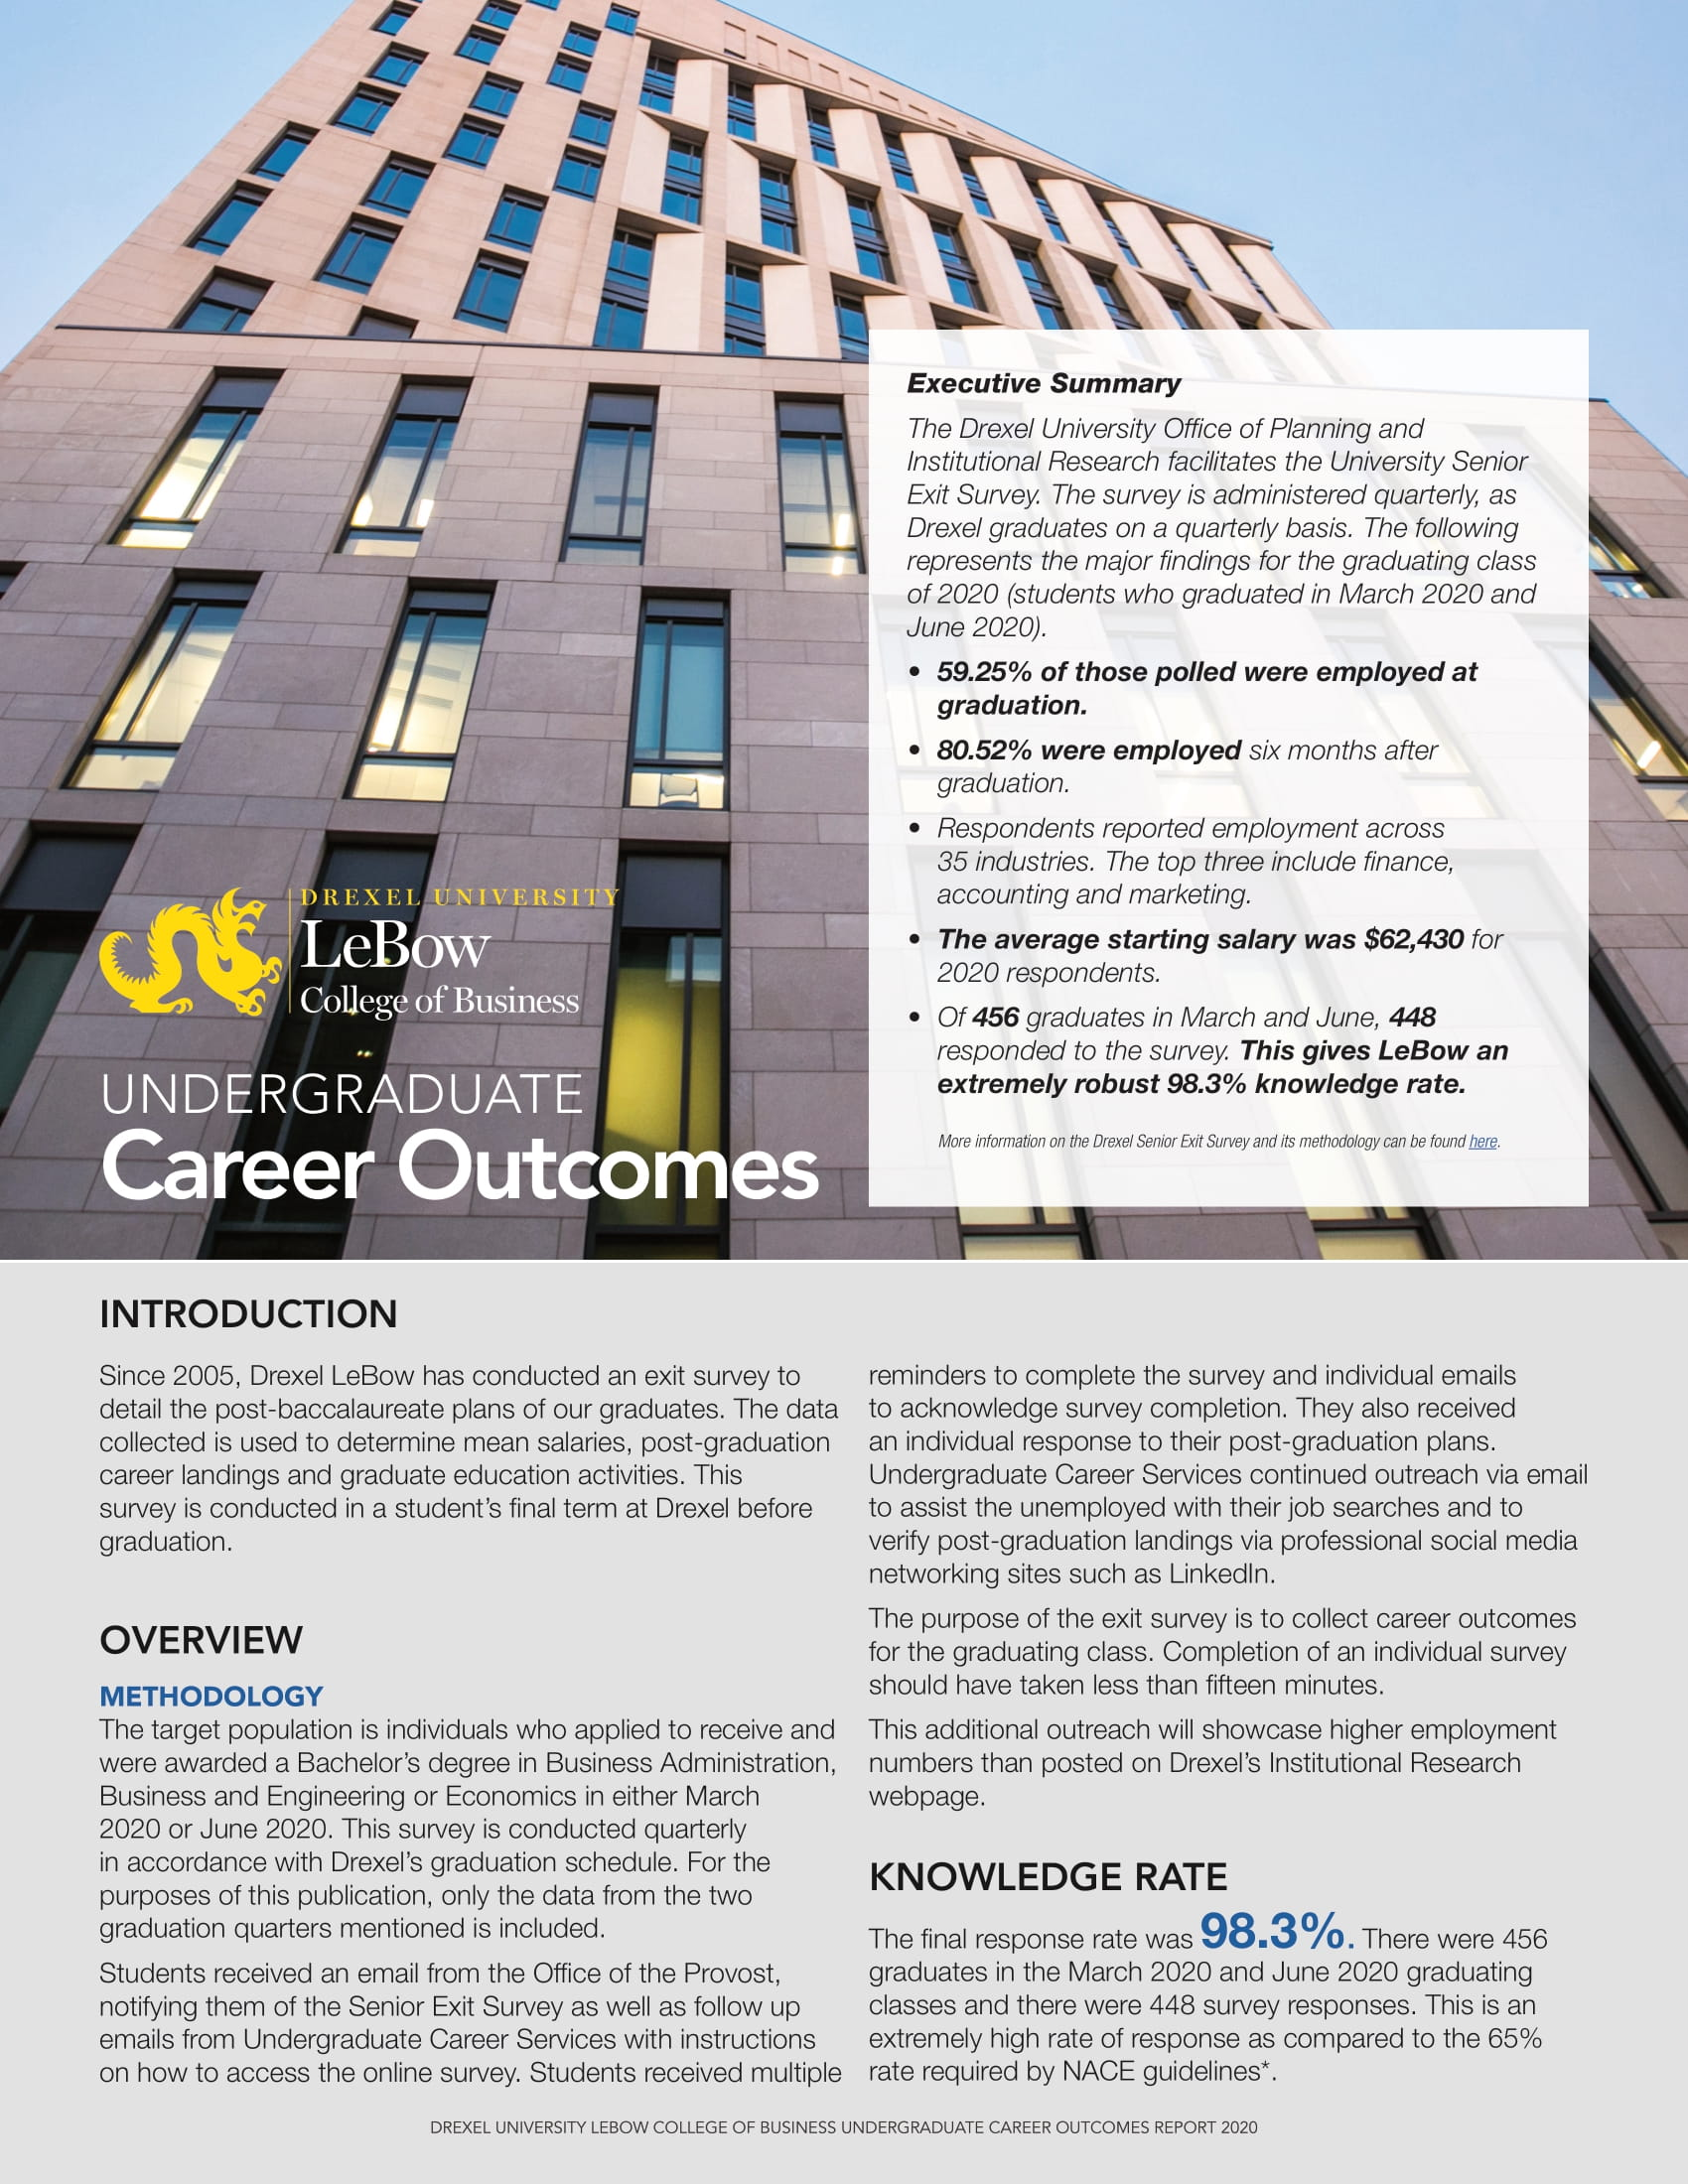 Career Outcomes 2020 Report